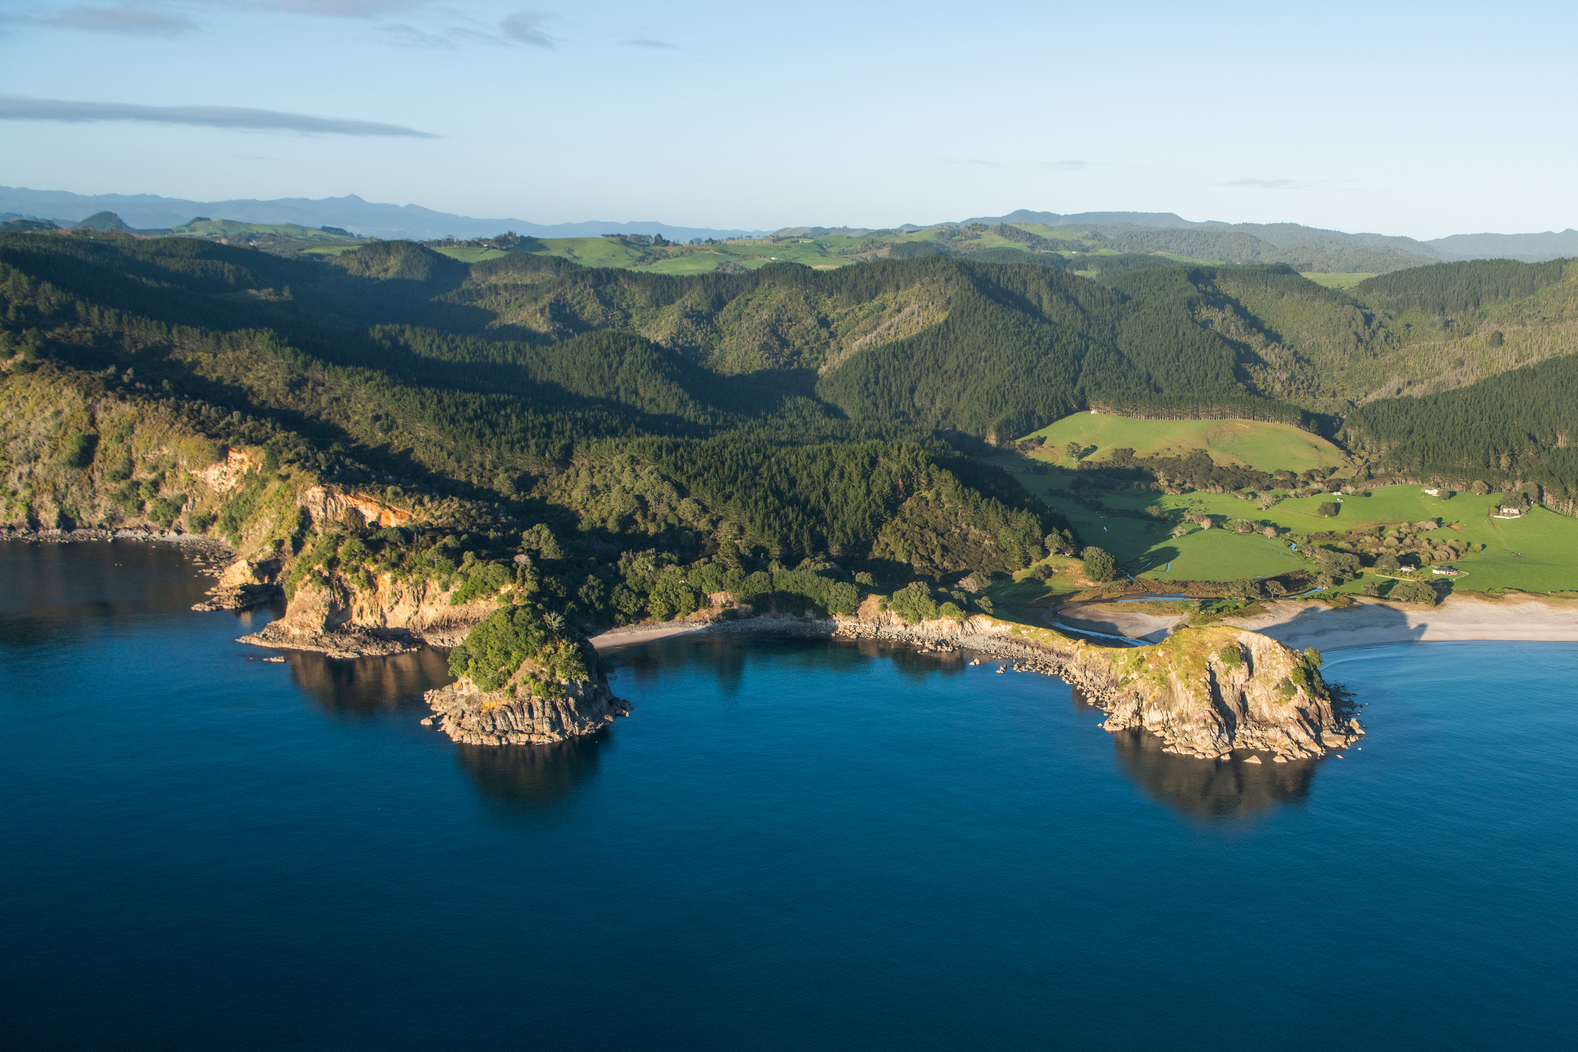 Helicopter trip along the Coromandel coast